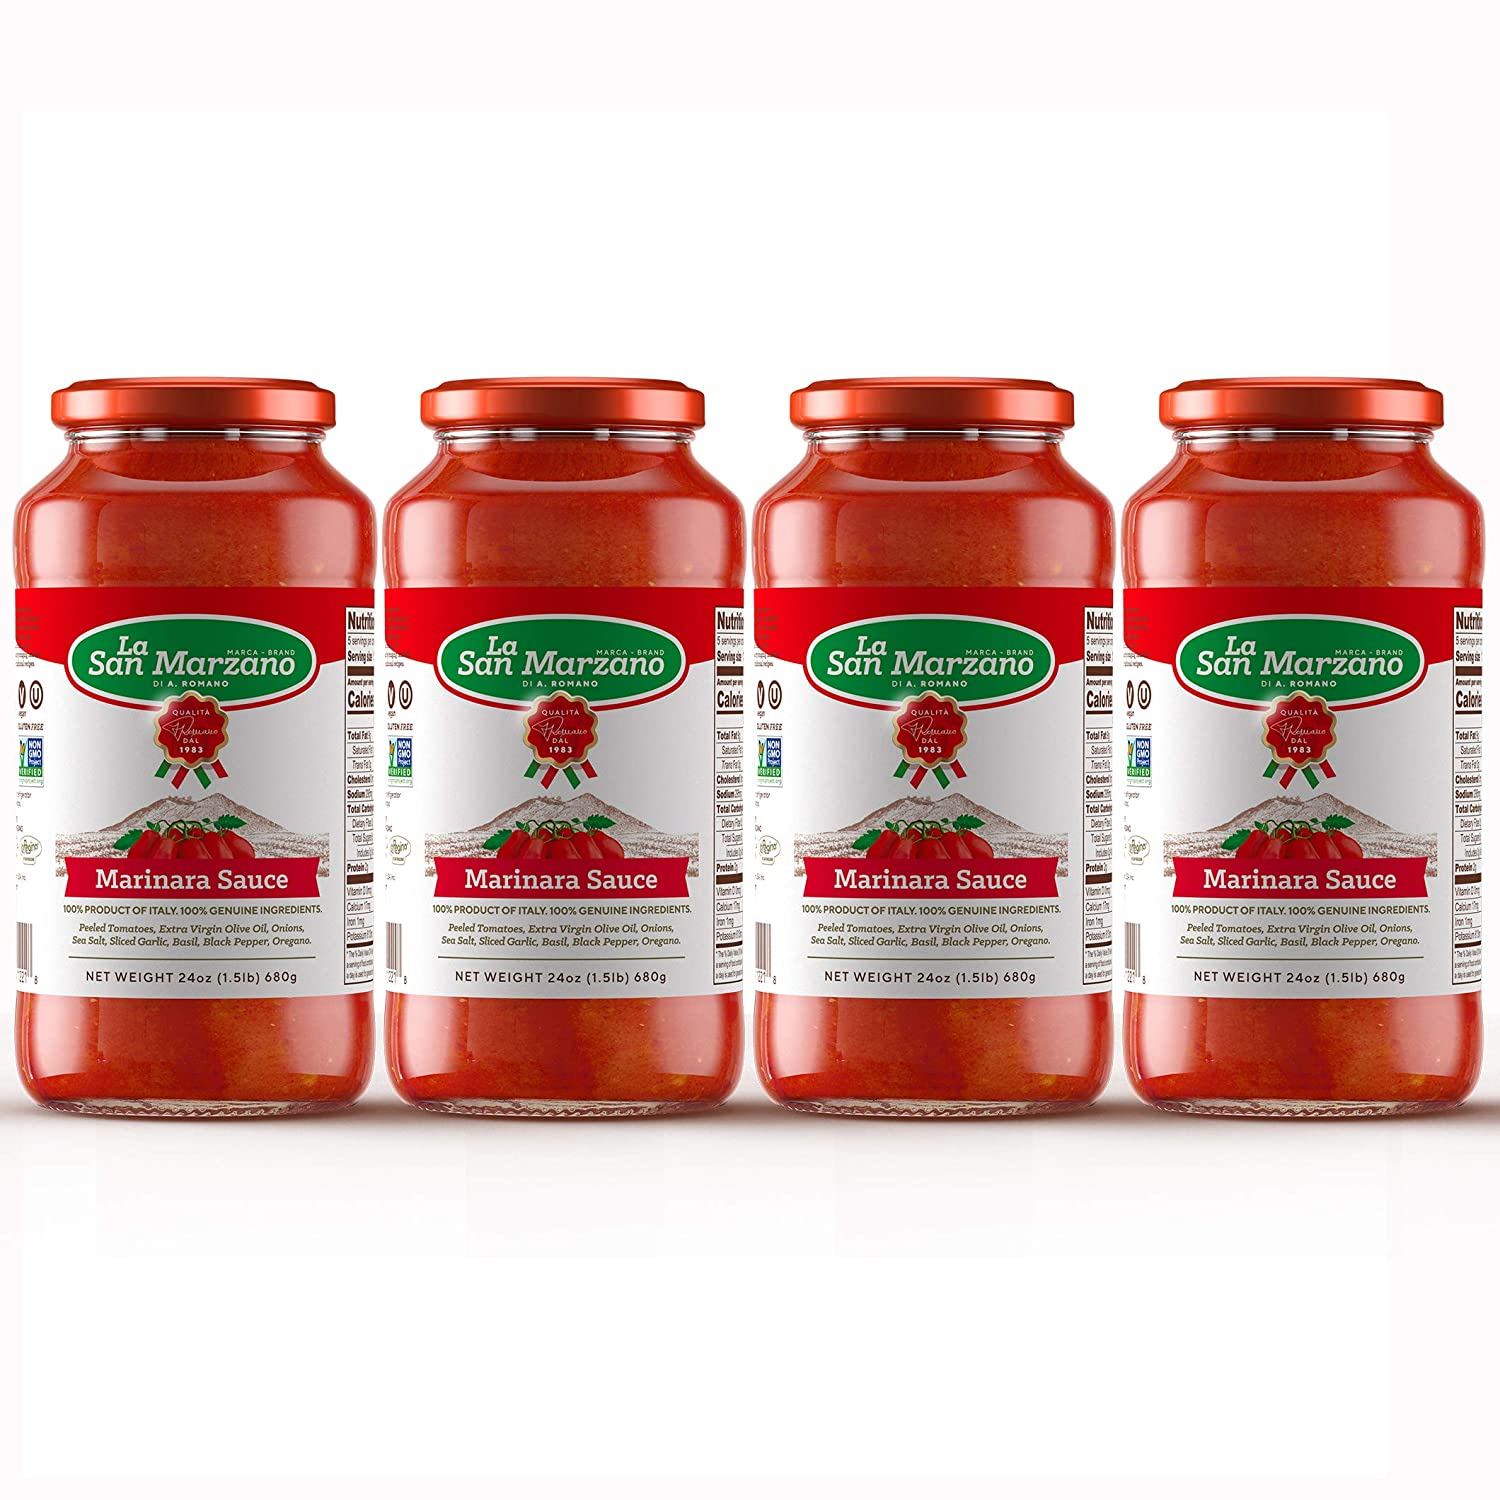 Marinara Pasta Sauce 100% Product of Italy 24 Ounce Jars - 100% Genuine Ingredients With San Marzano Tomatoes (Pack of 4)